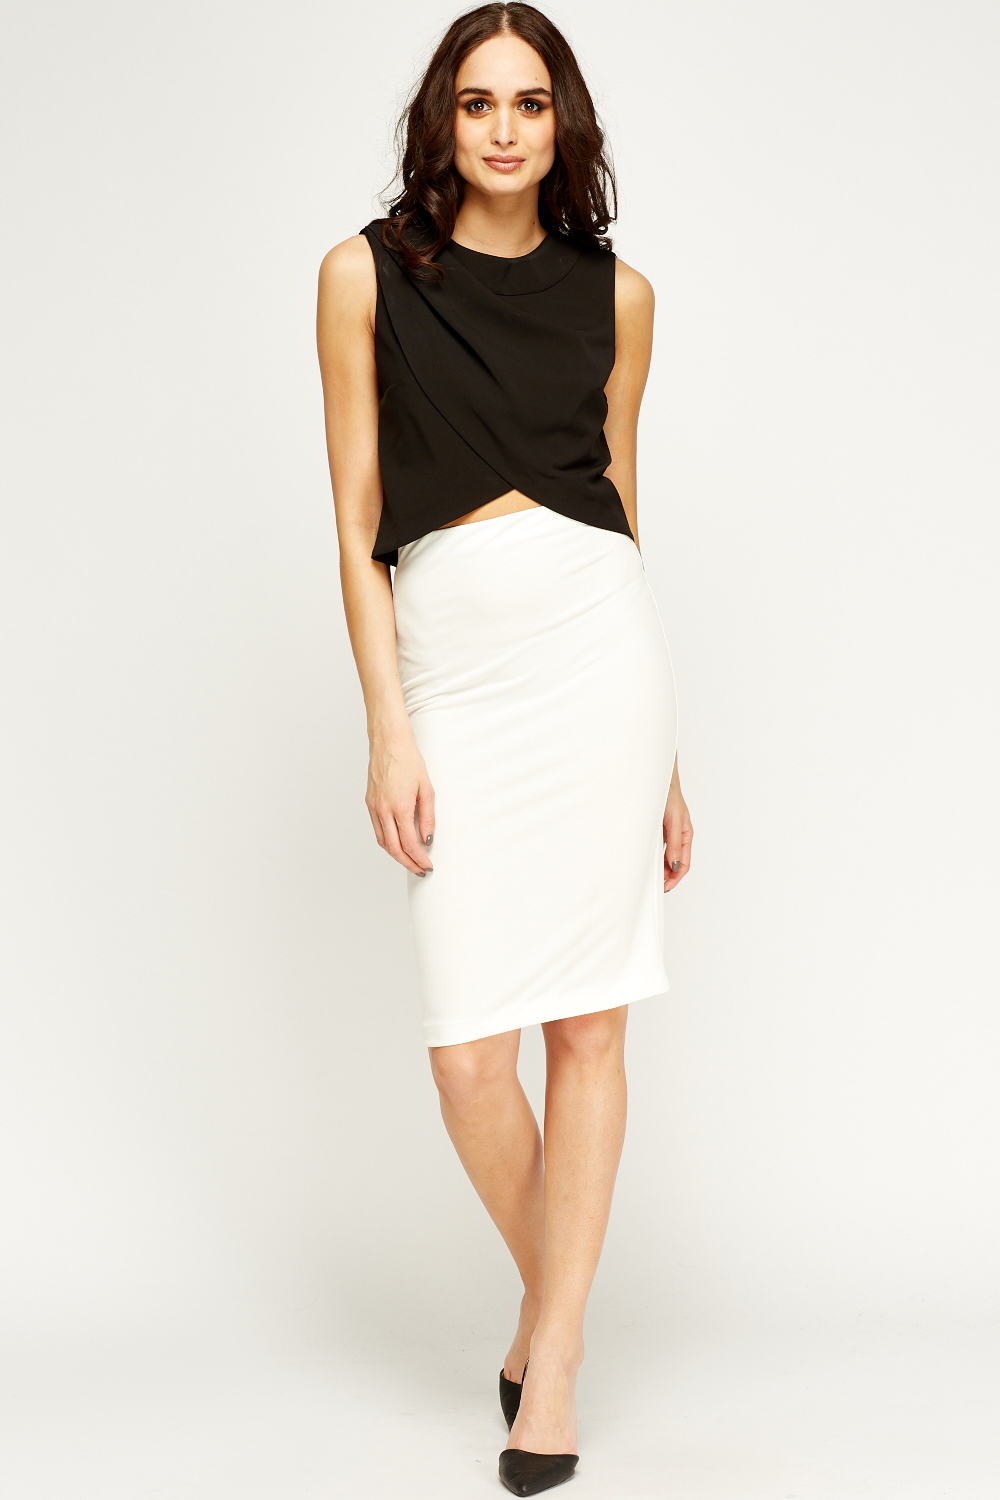 Off White Midi Pencil Skirt - Just £5